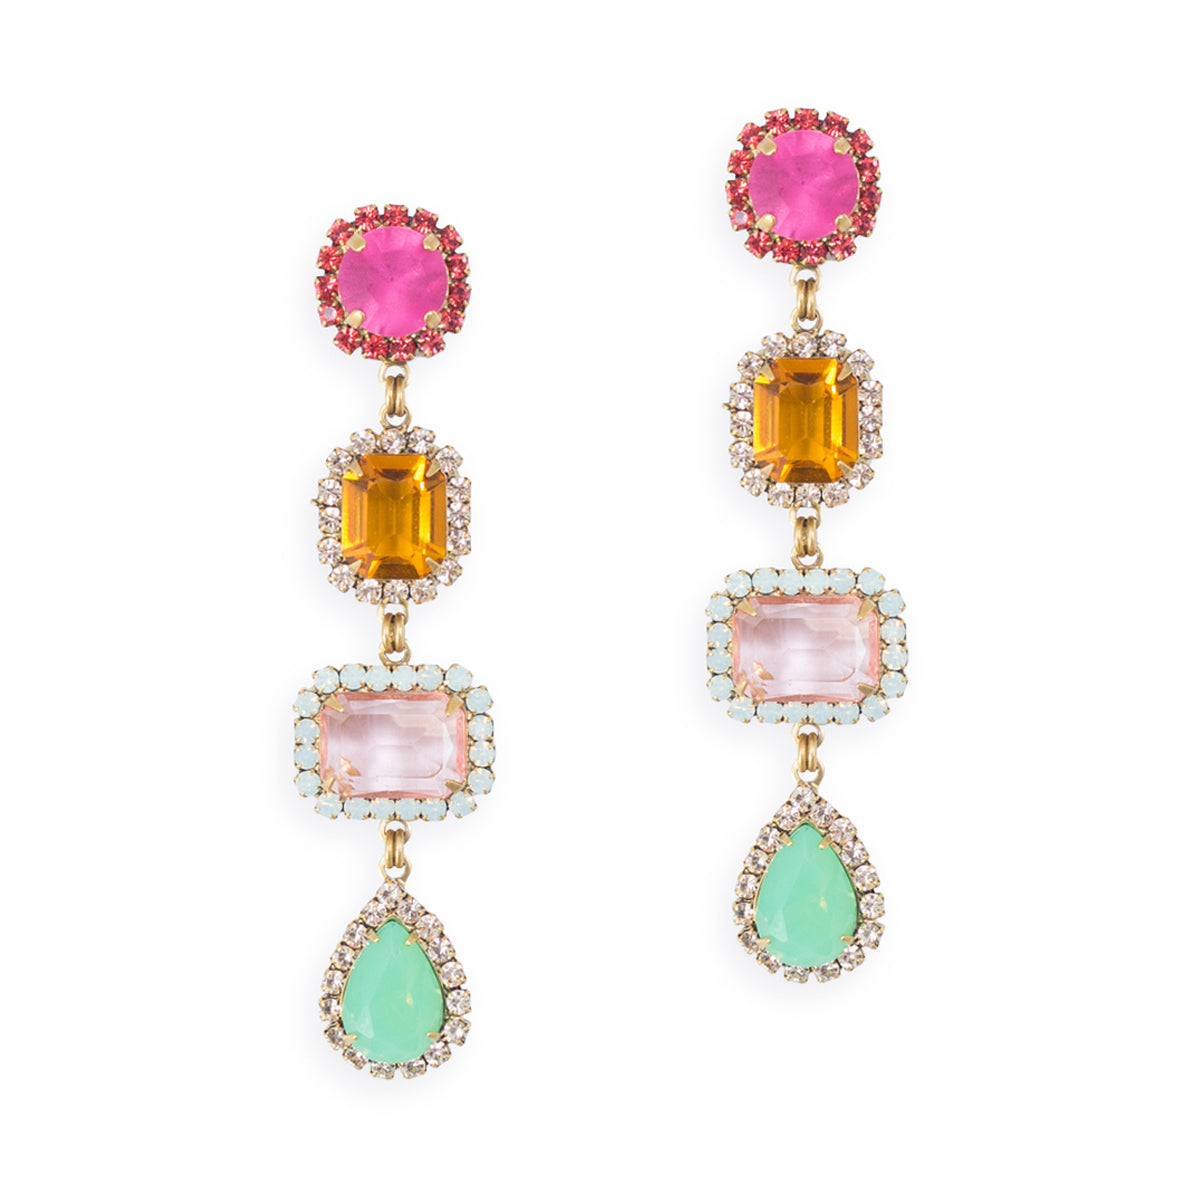 Emily Four Drop Earrings